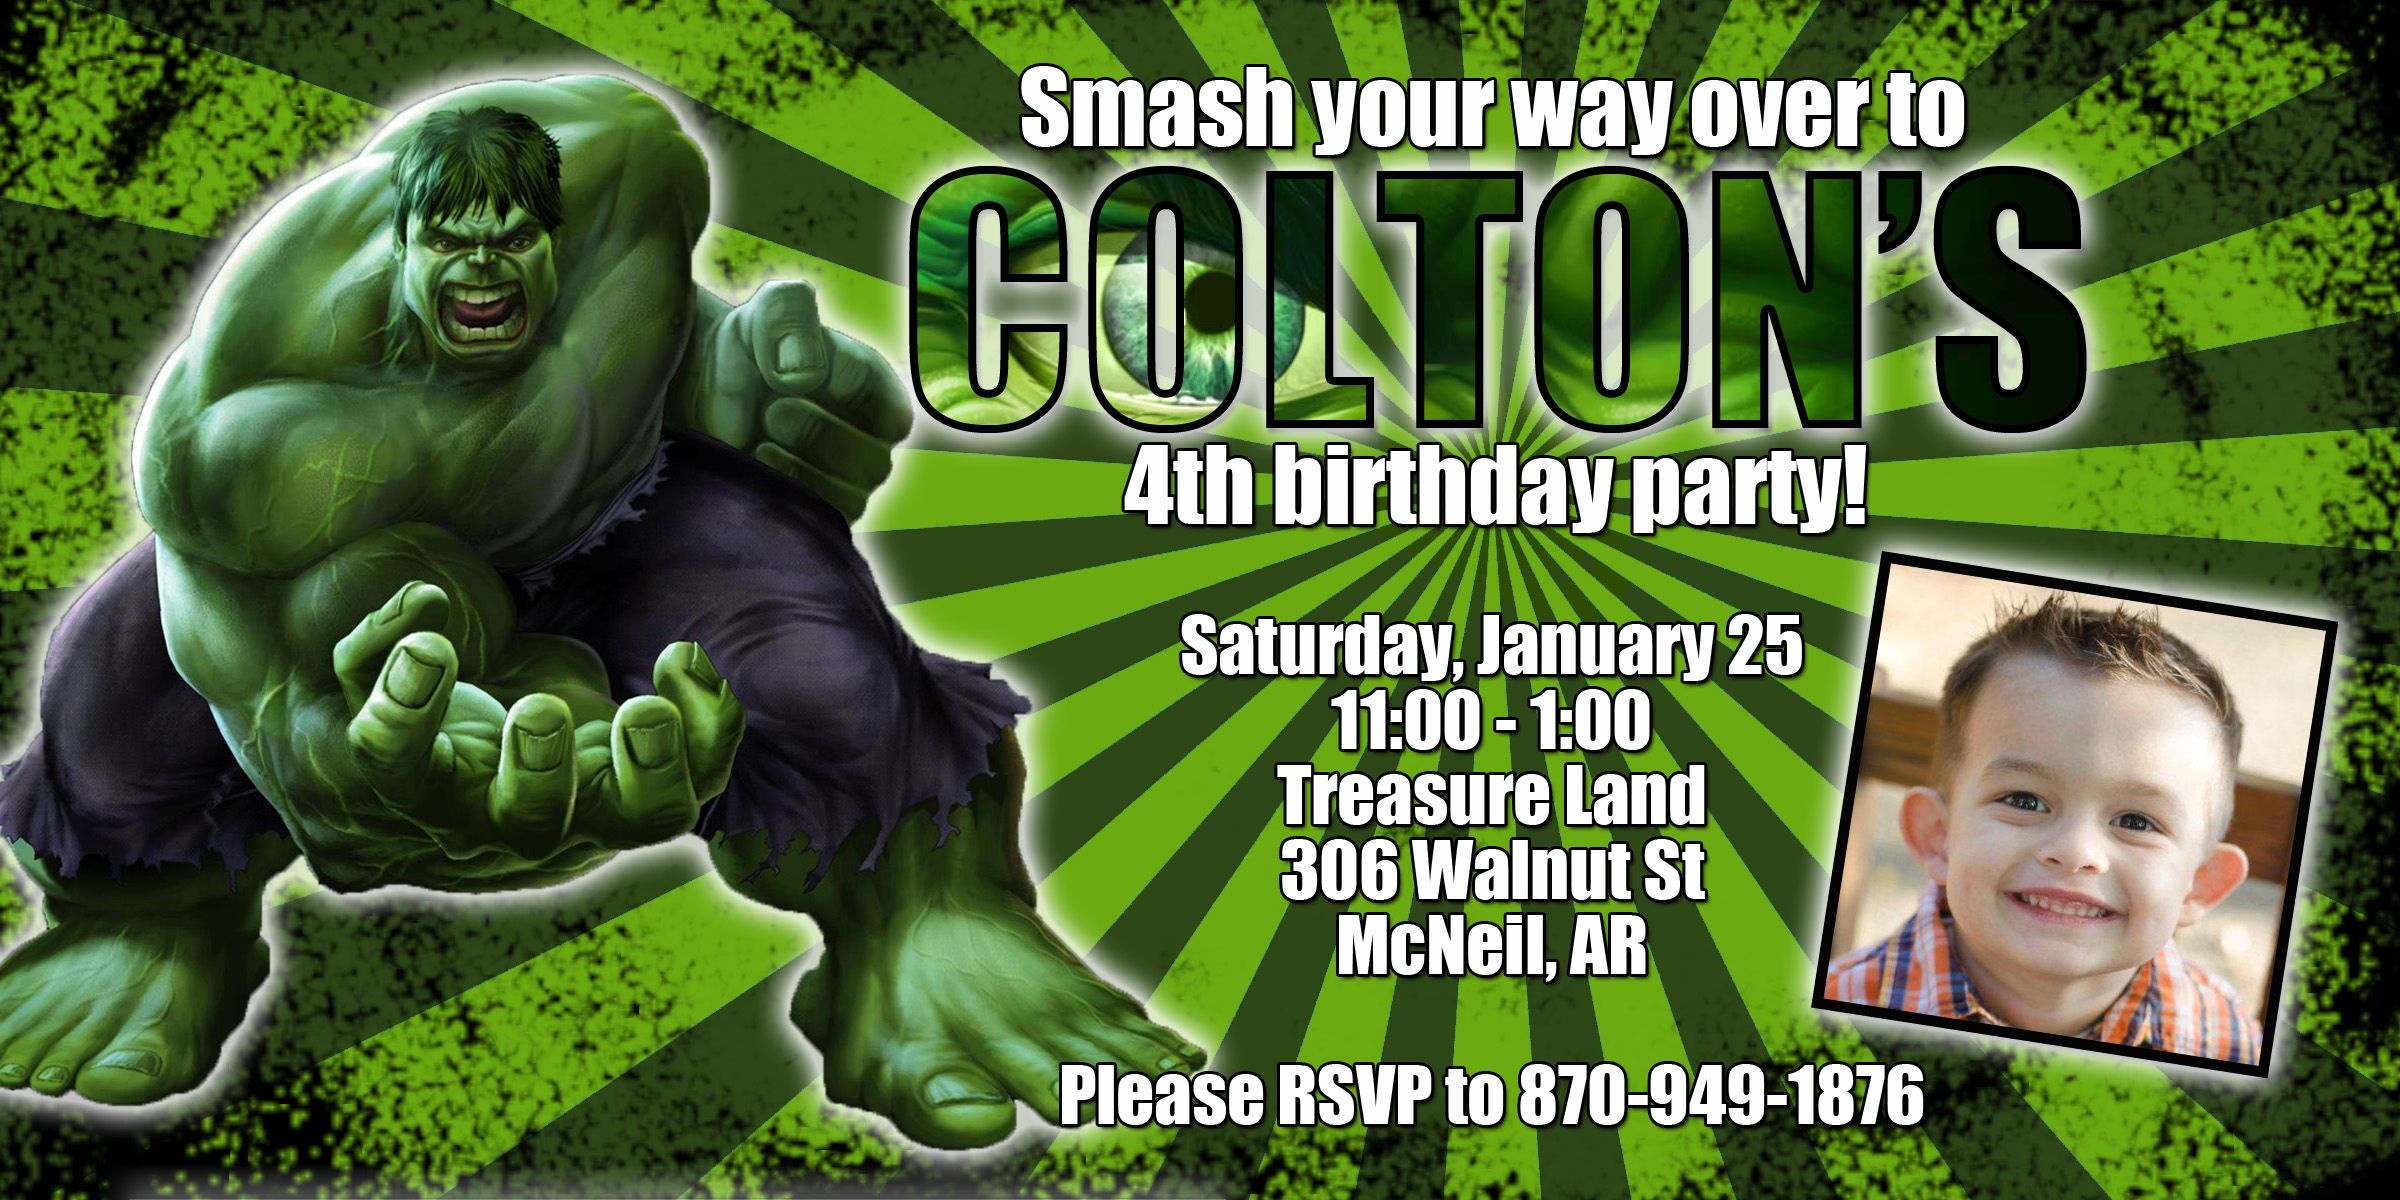 Hulk birthday party invitation  Birthday invitations, Printable